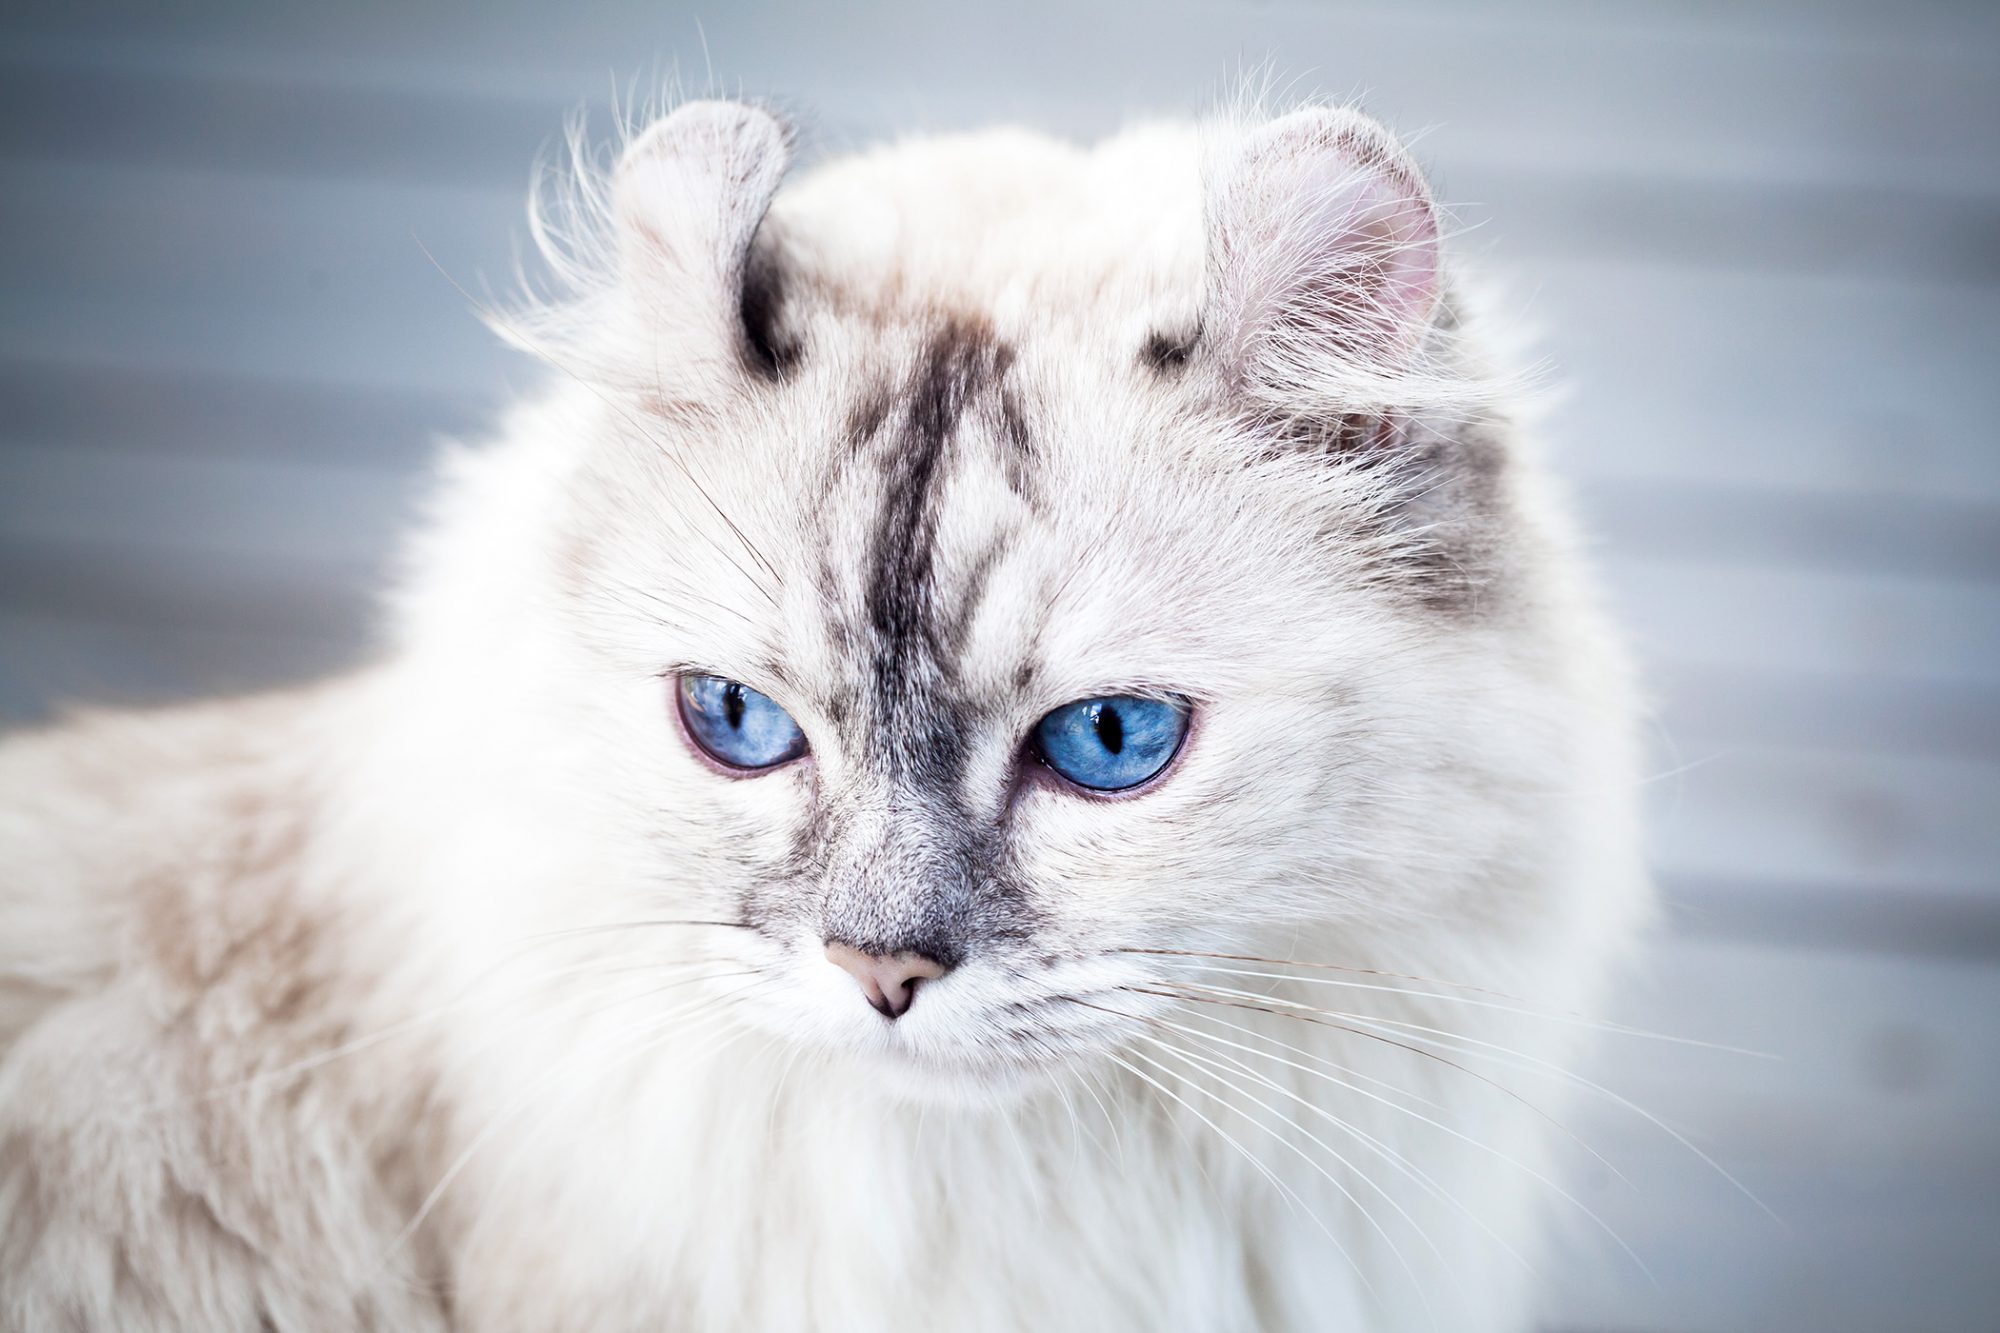 Close up portrait of American Curl cat with bright blue eyes